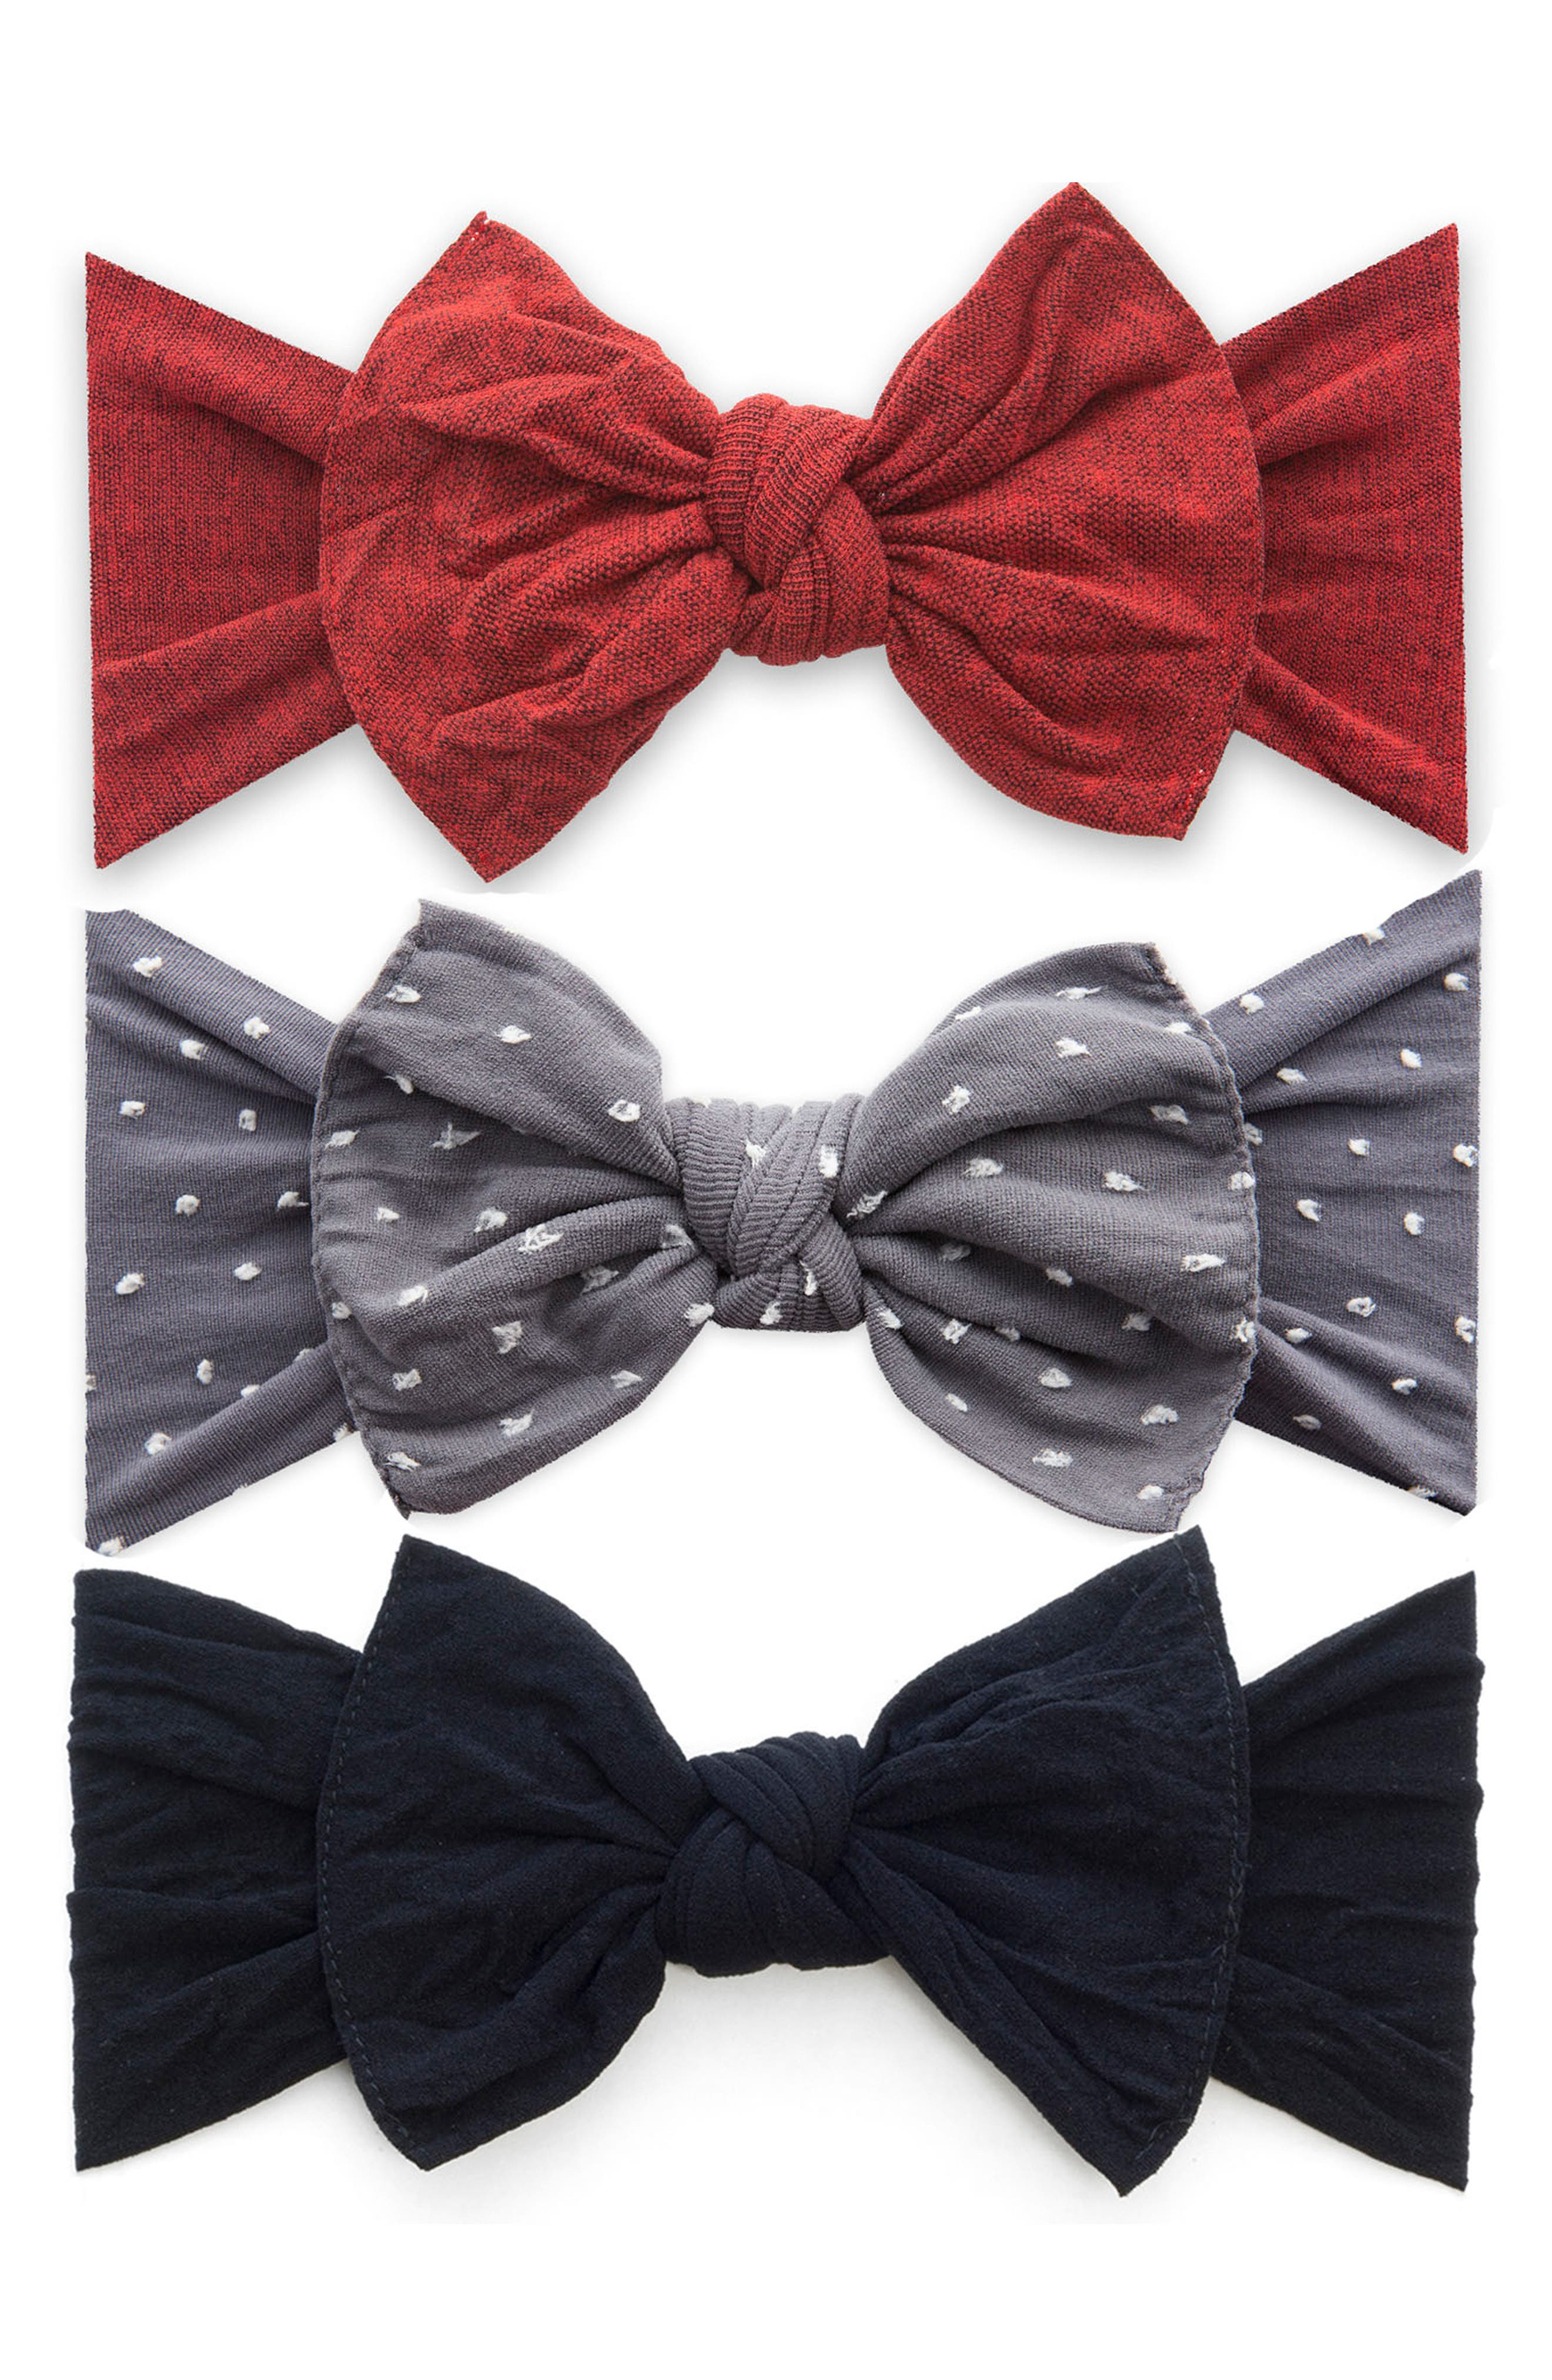 Baby Bling 3Pack Heathered Bow Stretch Headbands Size One Size  Red